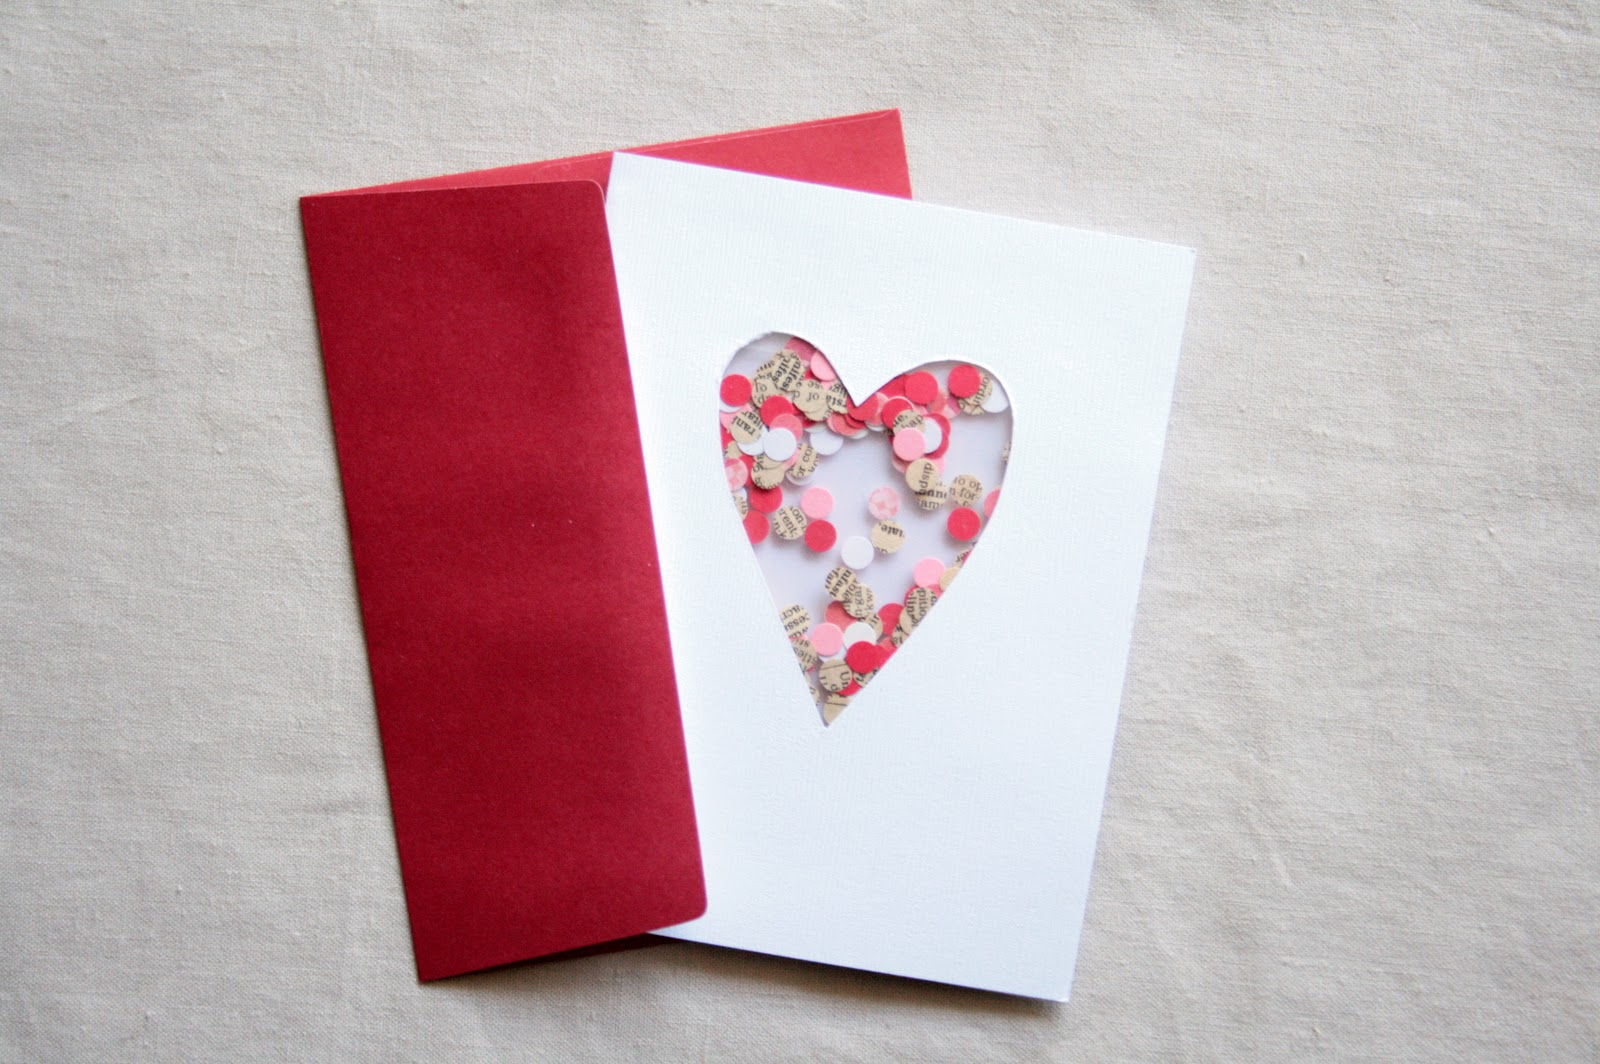 Out some handmade love with these 21 diy valentines day cards confetti hearts diy valentine confetti card kristyandbryce Choice Image